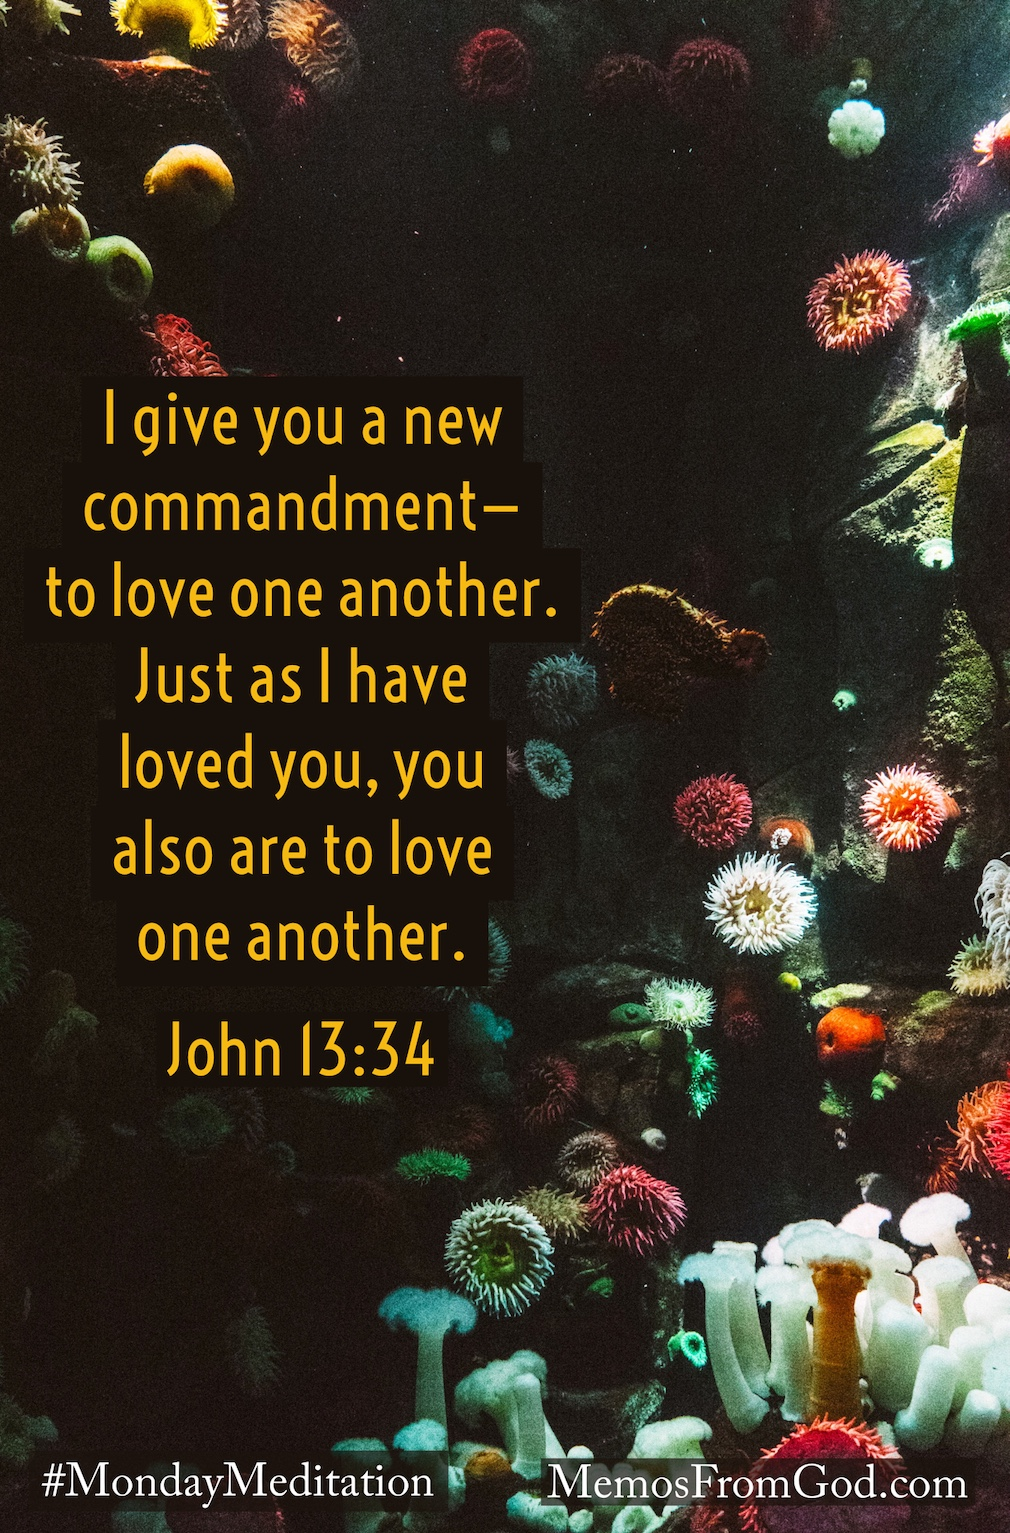 Brightly coloured aquatic plants with a dark background. Caption: I give you a new commandment—to love one another. Just as I have loved you, you also are to love one another. John 13:34